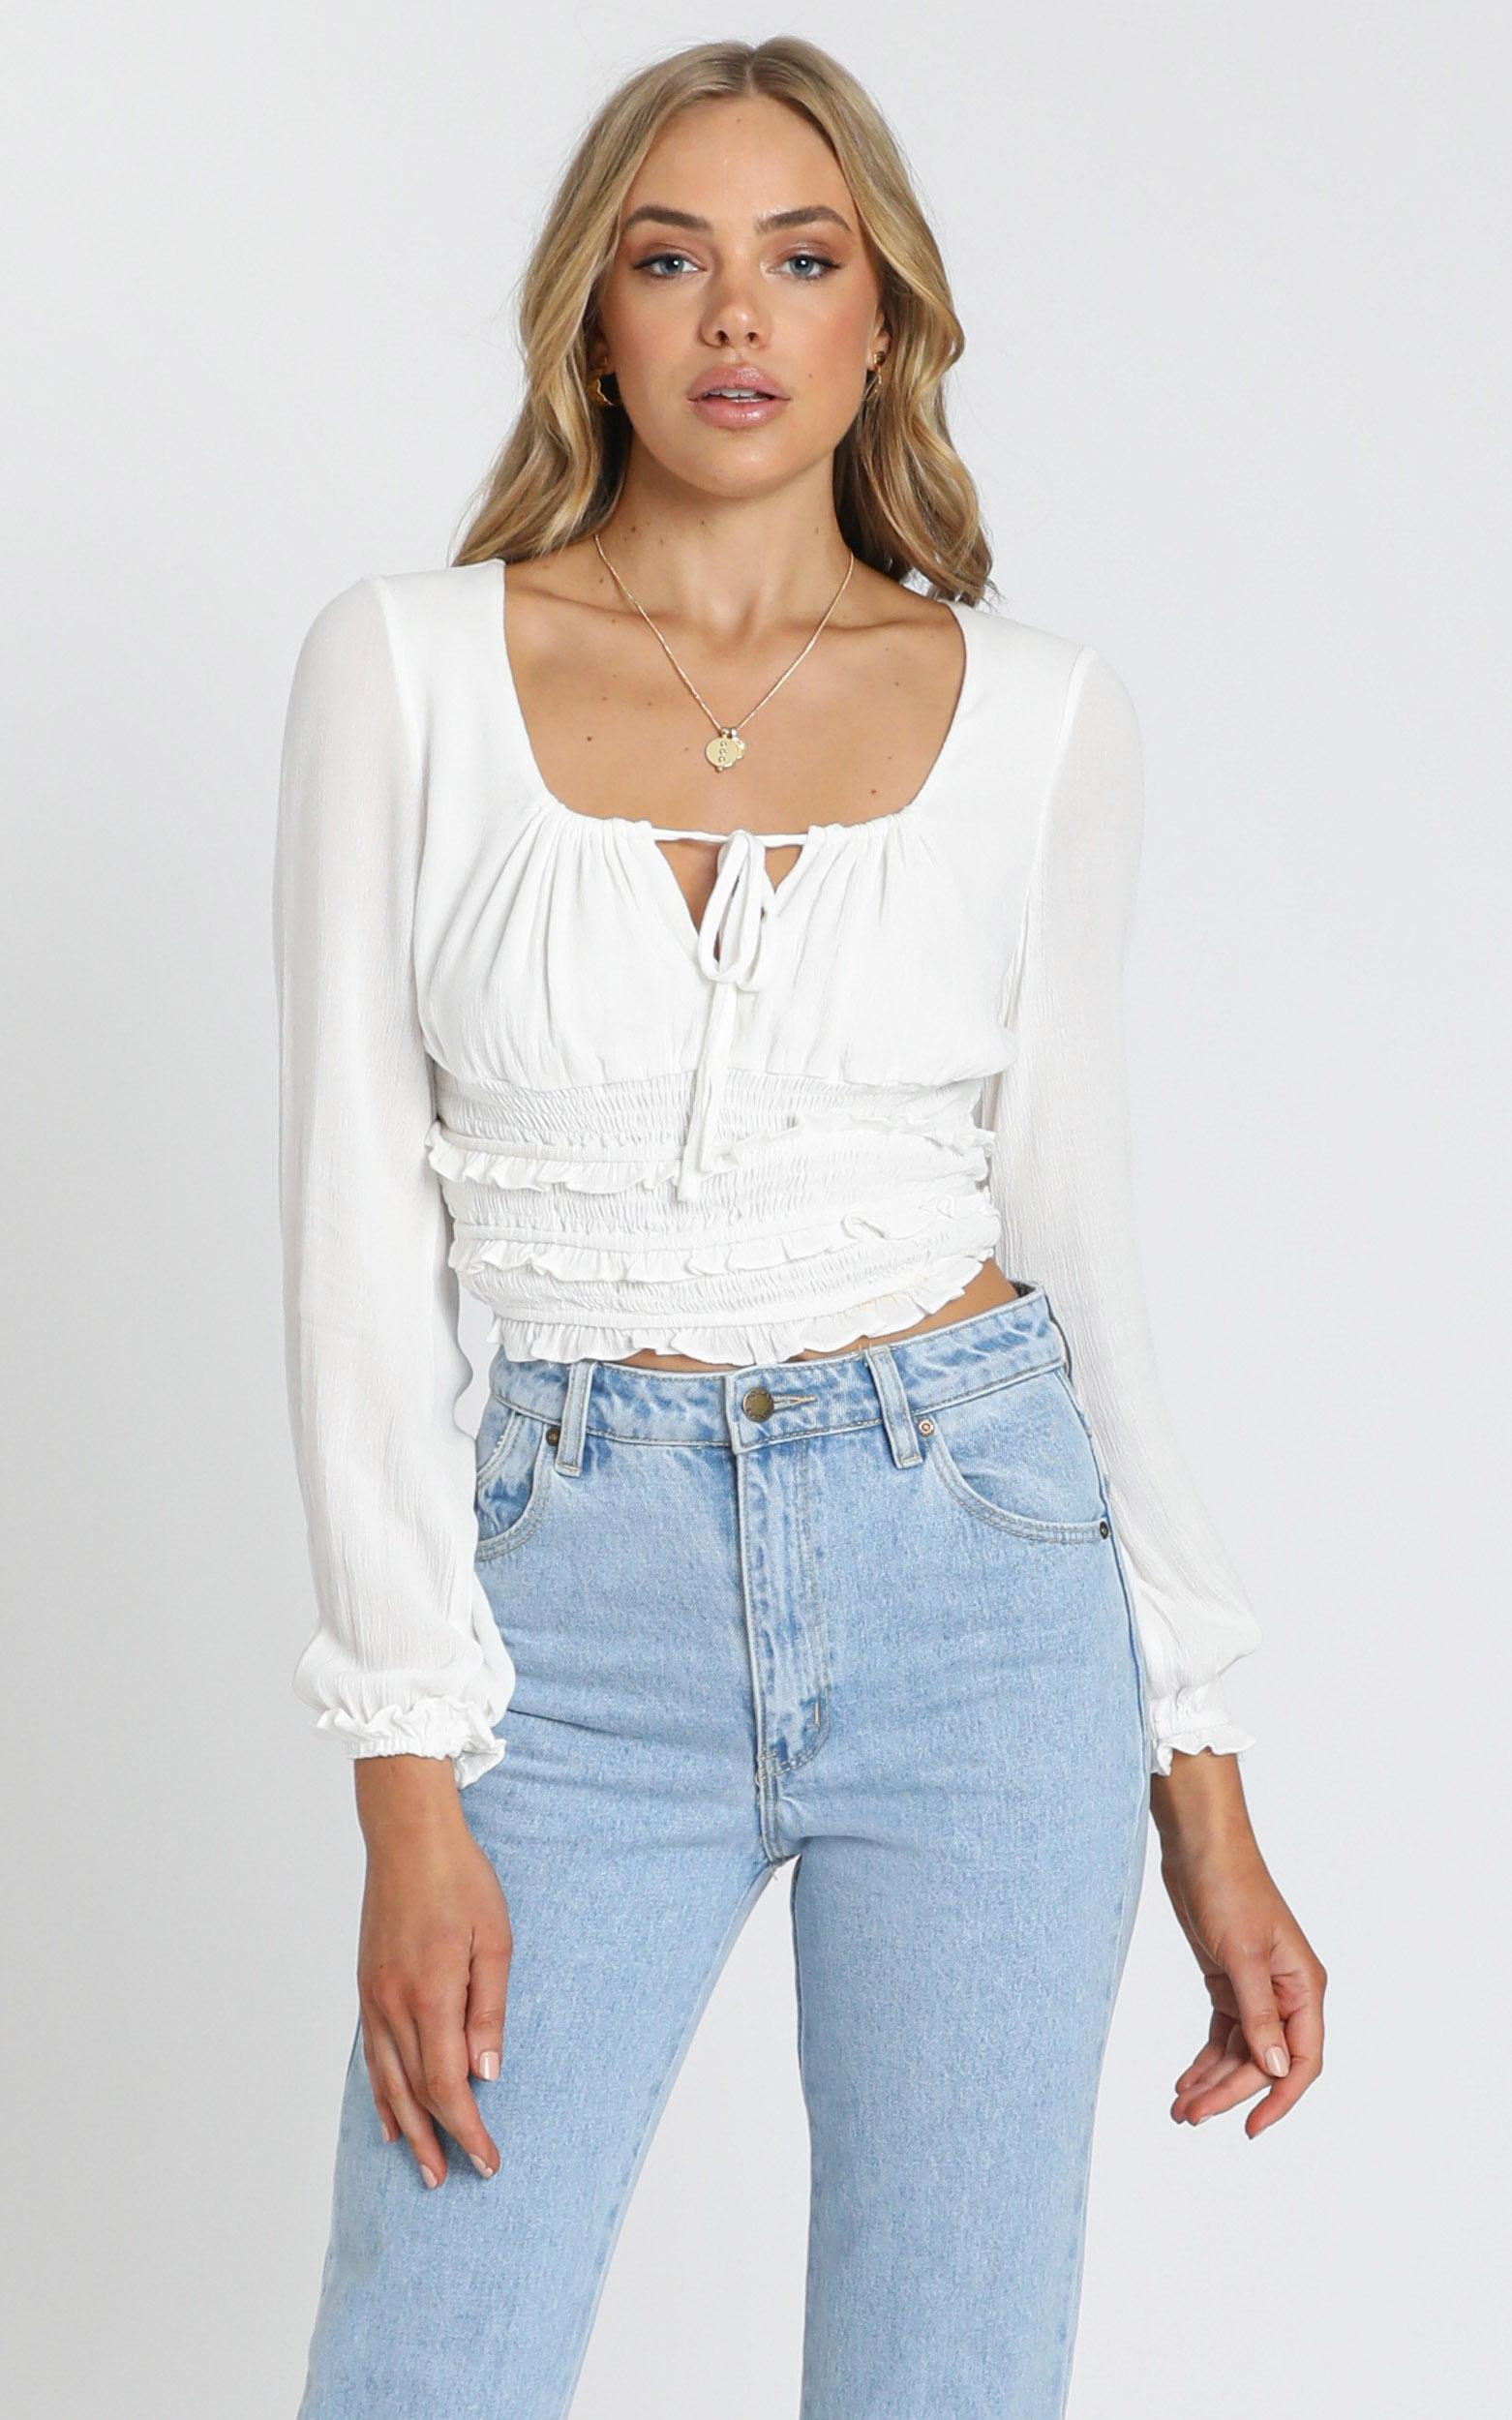 Eugenie Long Sleeve Top in White - 6 (XS), White, hi-res image number null